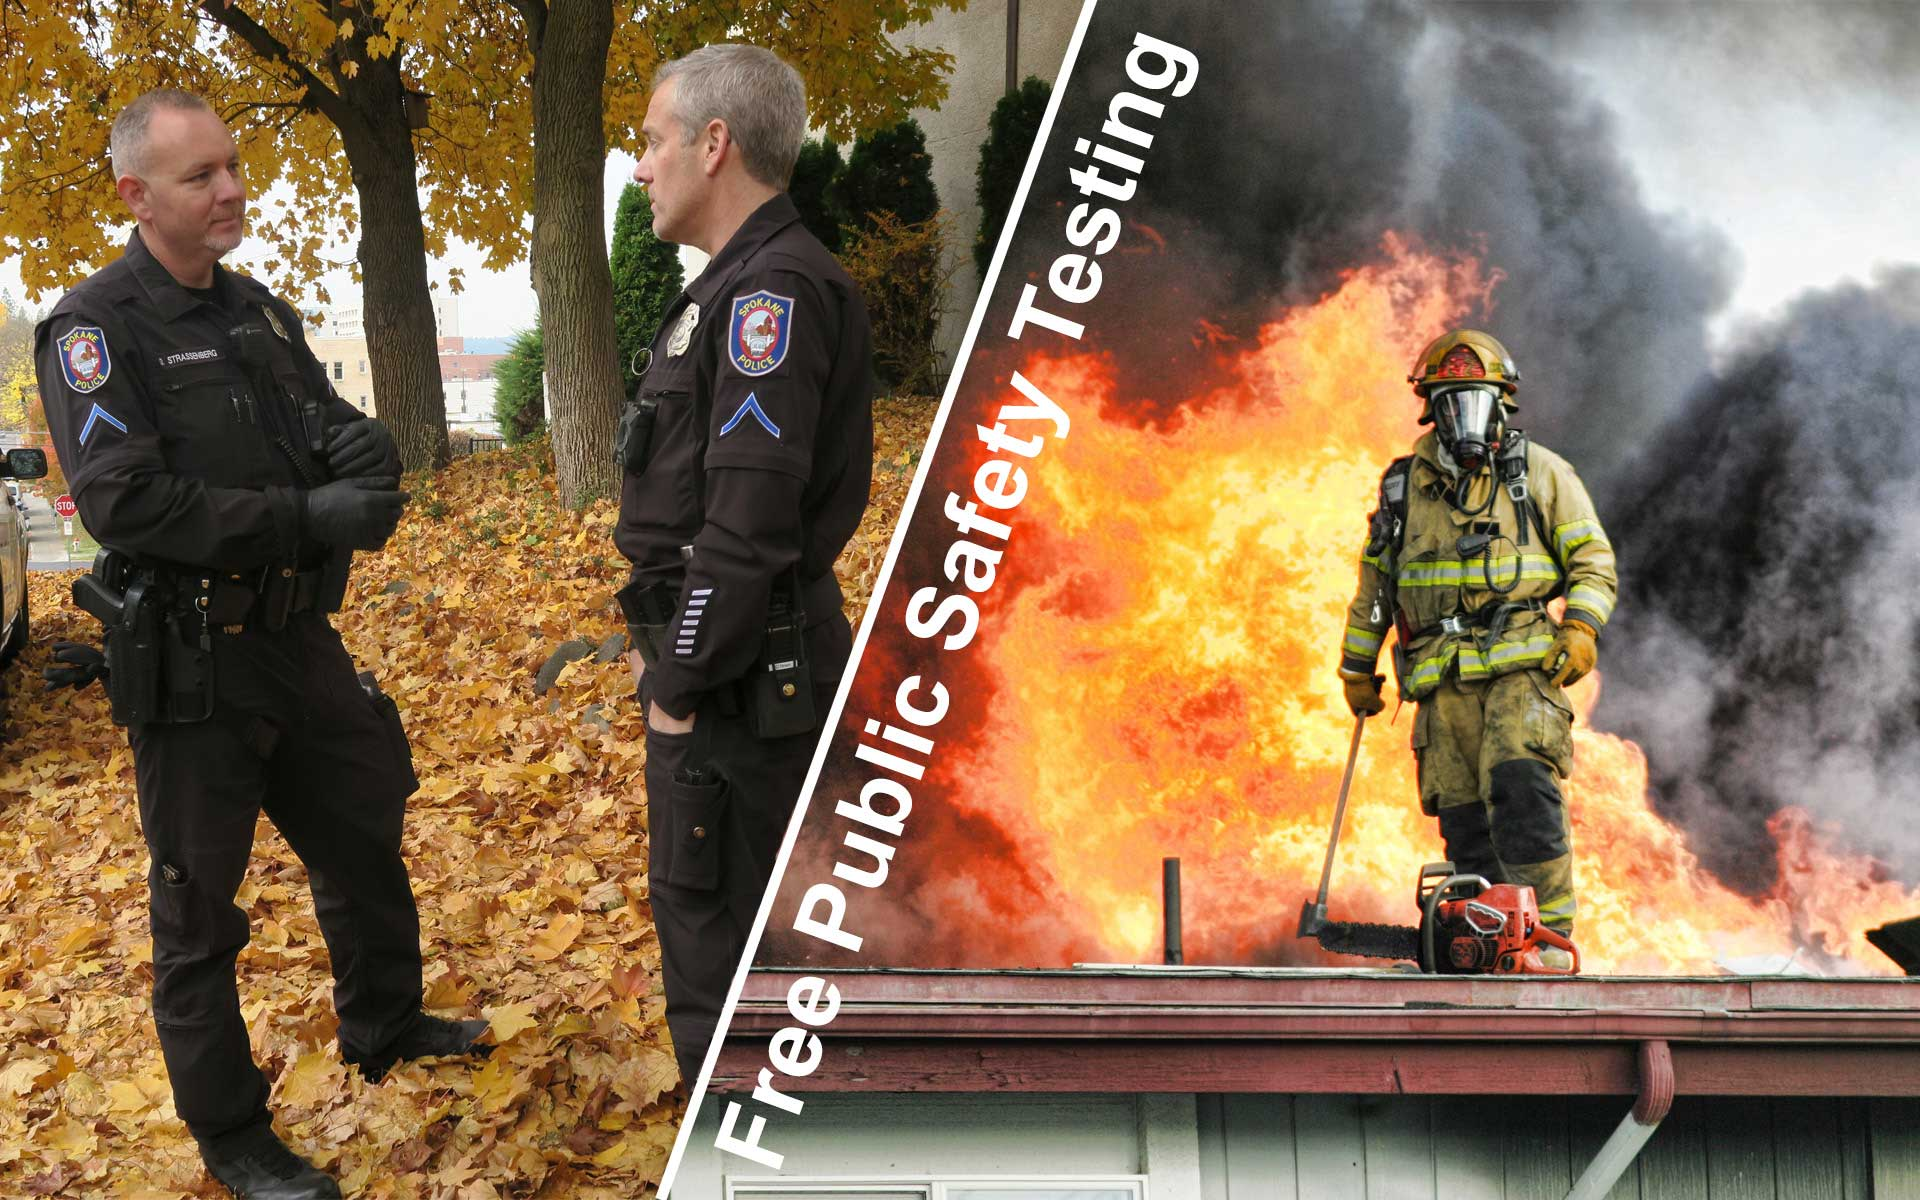 Are You Interested In Becoming A Police Officer Or Firefighter